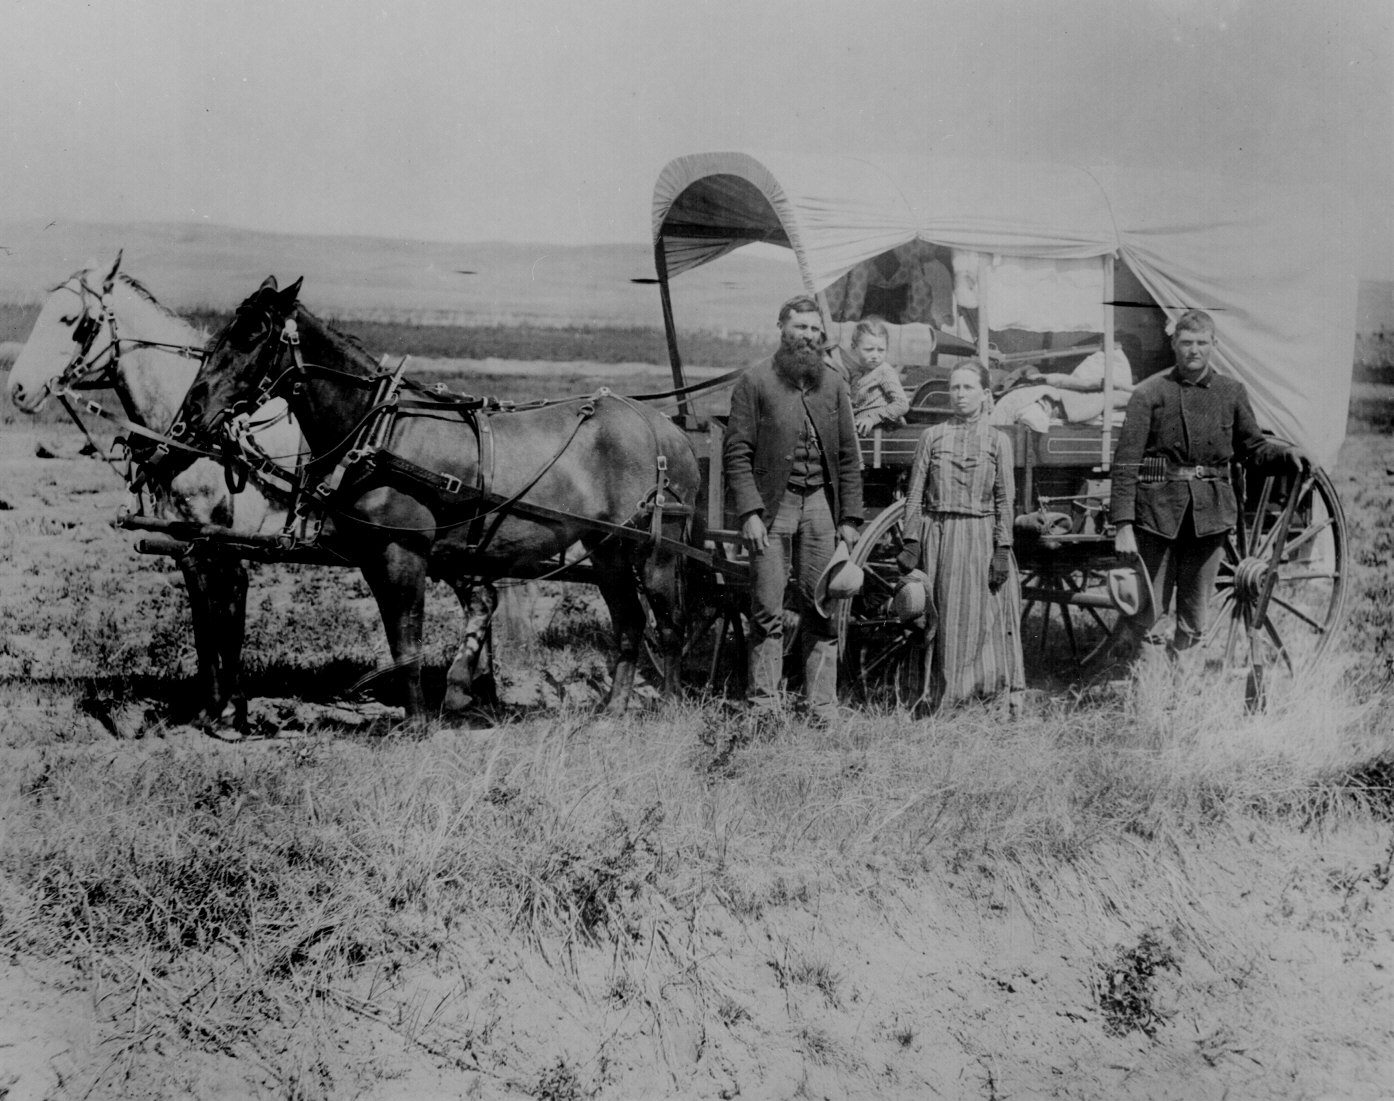 A pioneer family in Nebraska, c. 1886